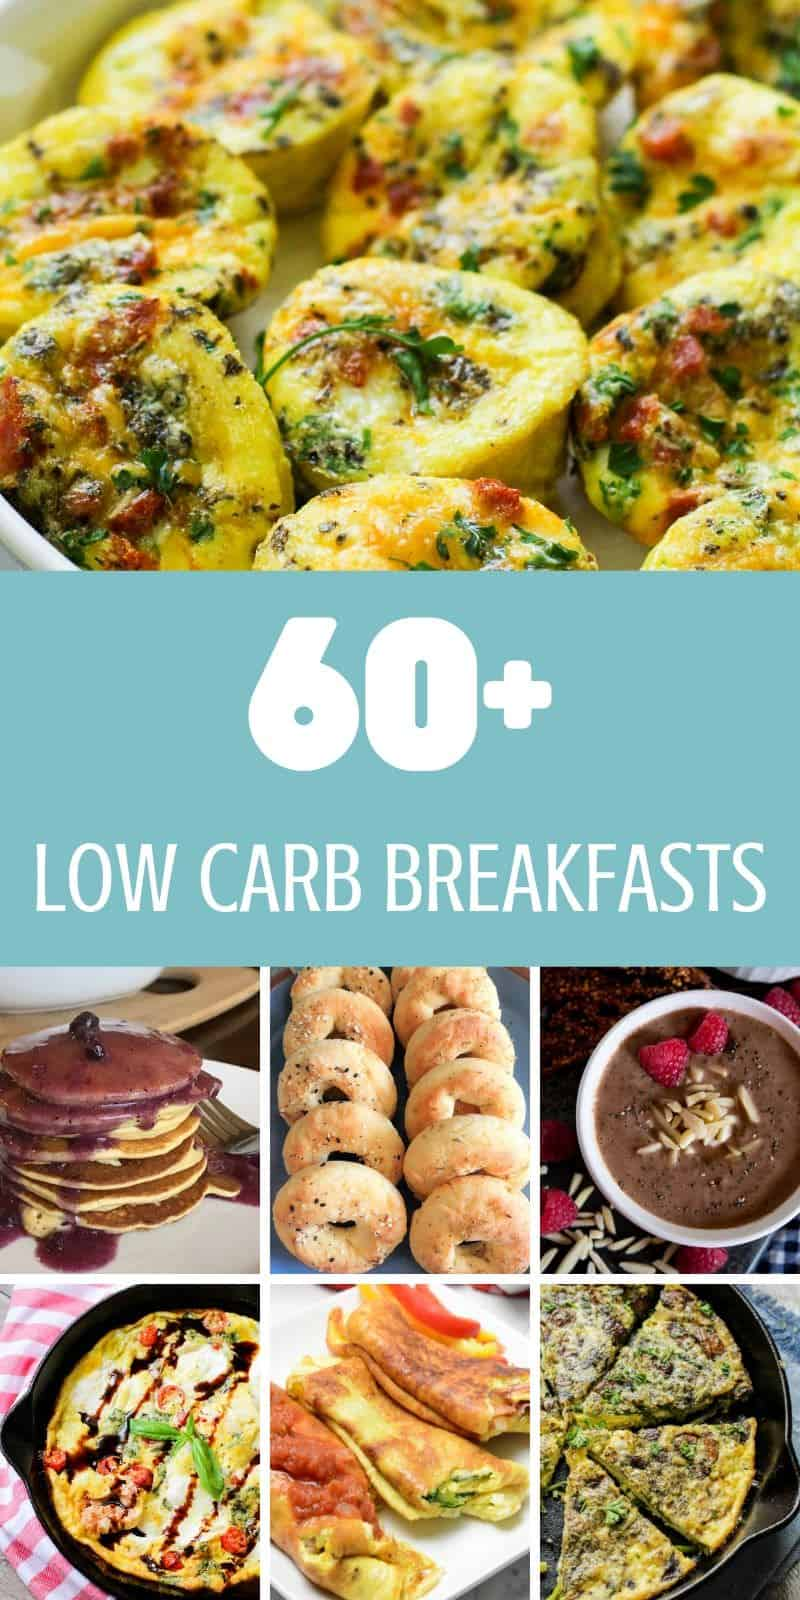 60 Low Carb Breakfast Ideas For The Keto Diet